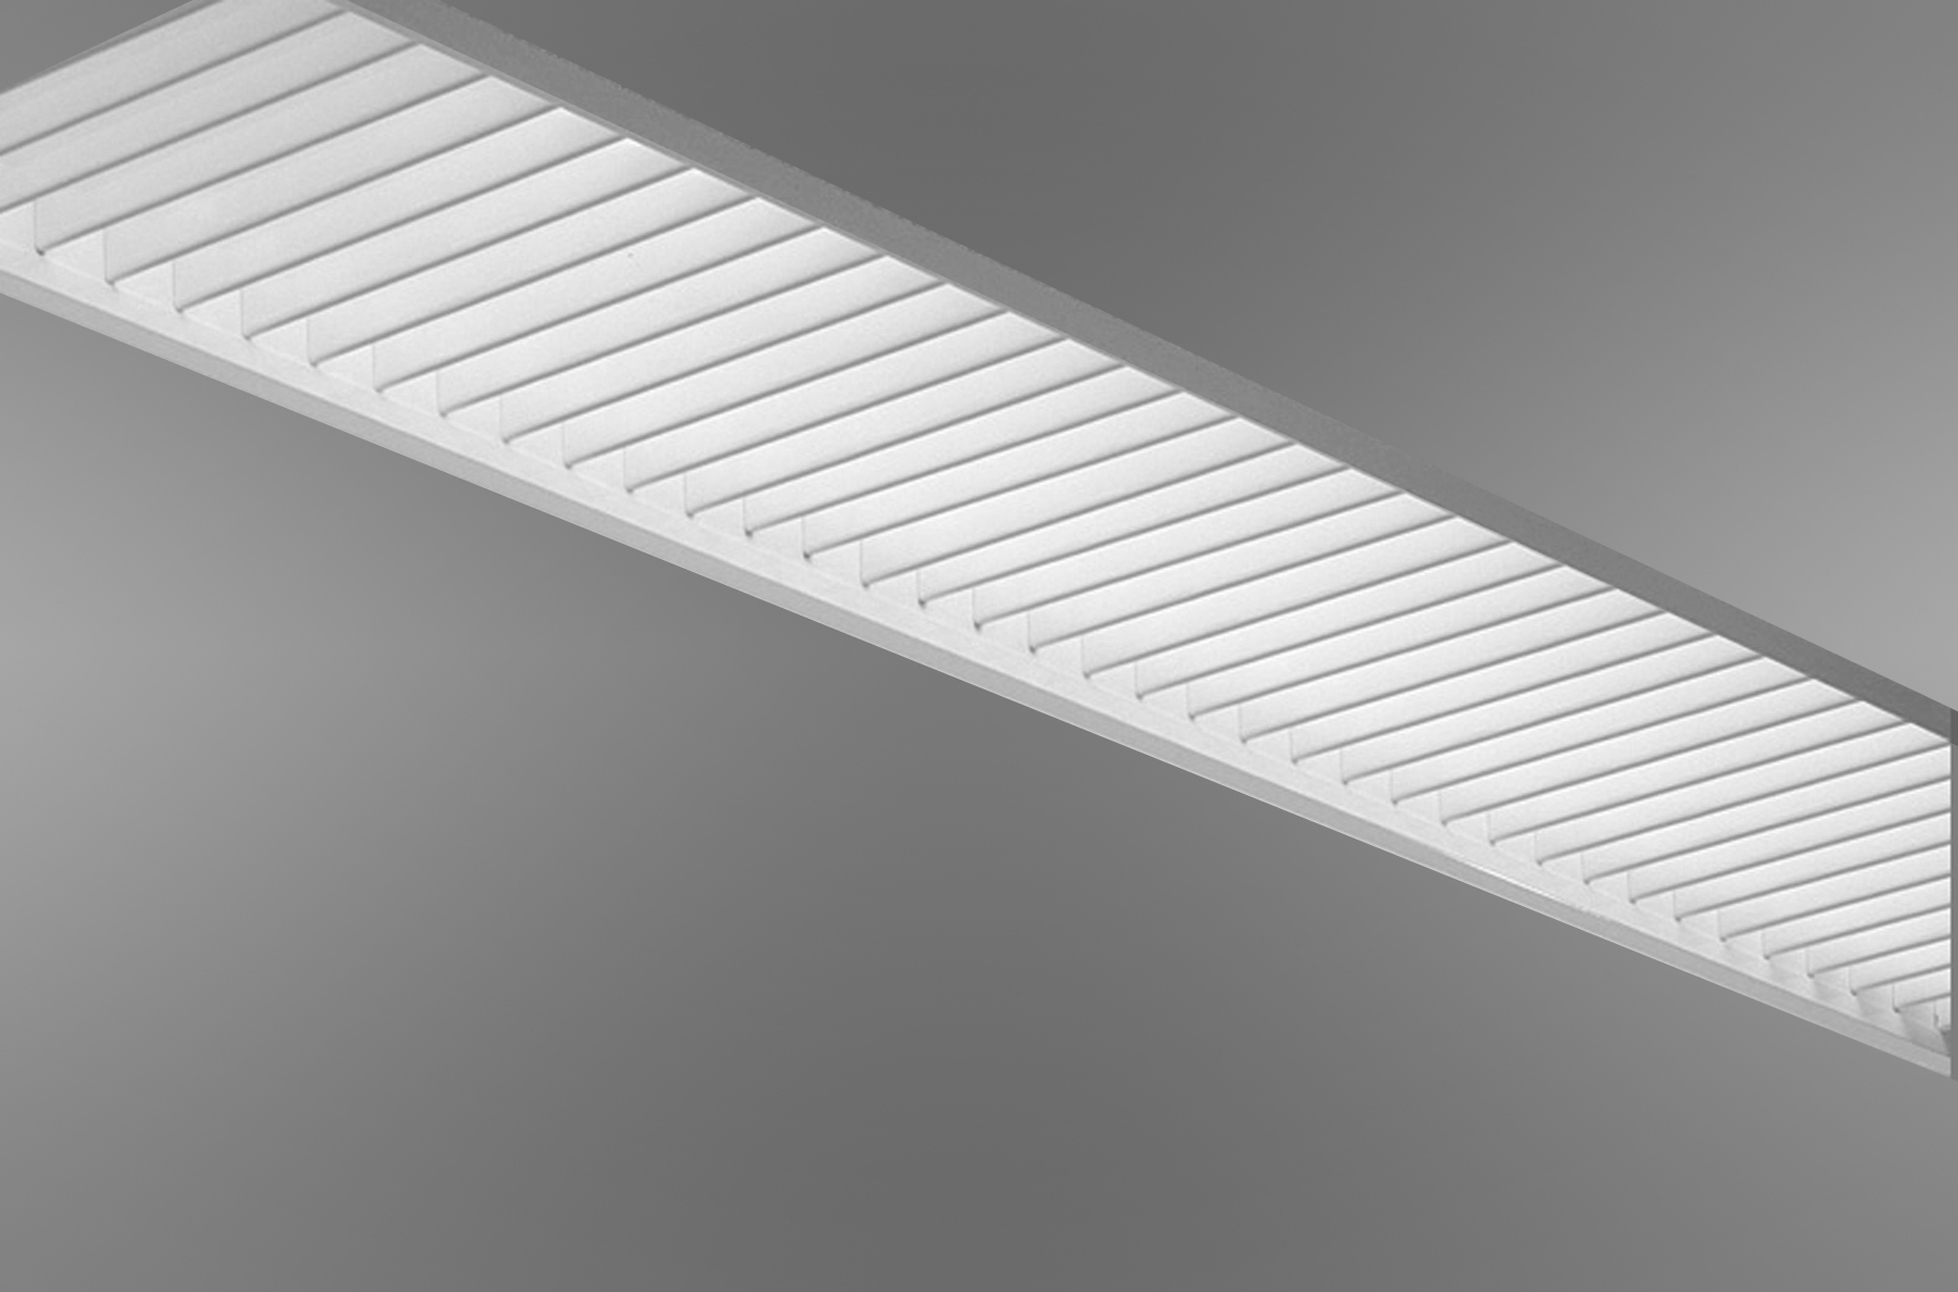 Recessed Linear Lighting Fixtures | Mark Architectural Lighting